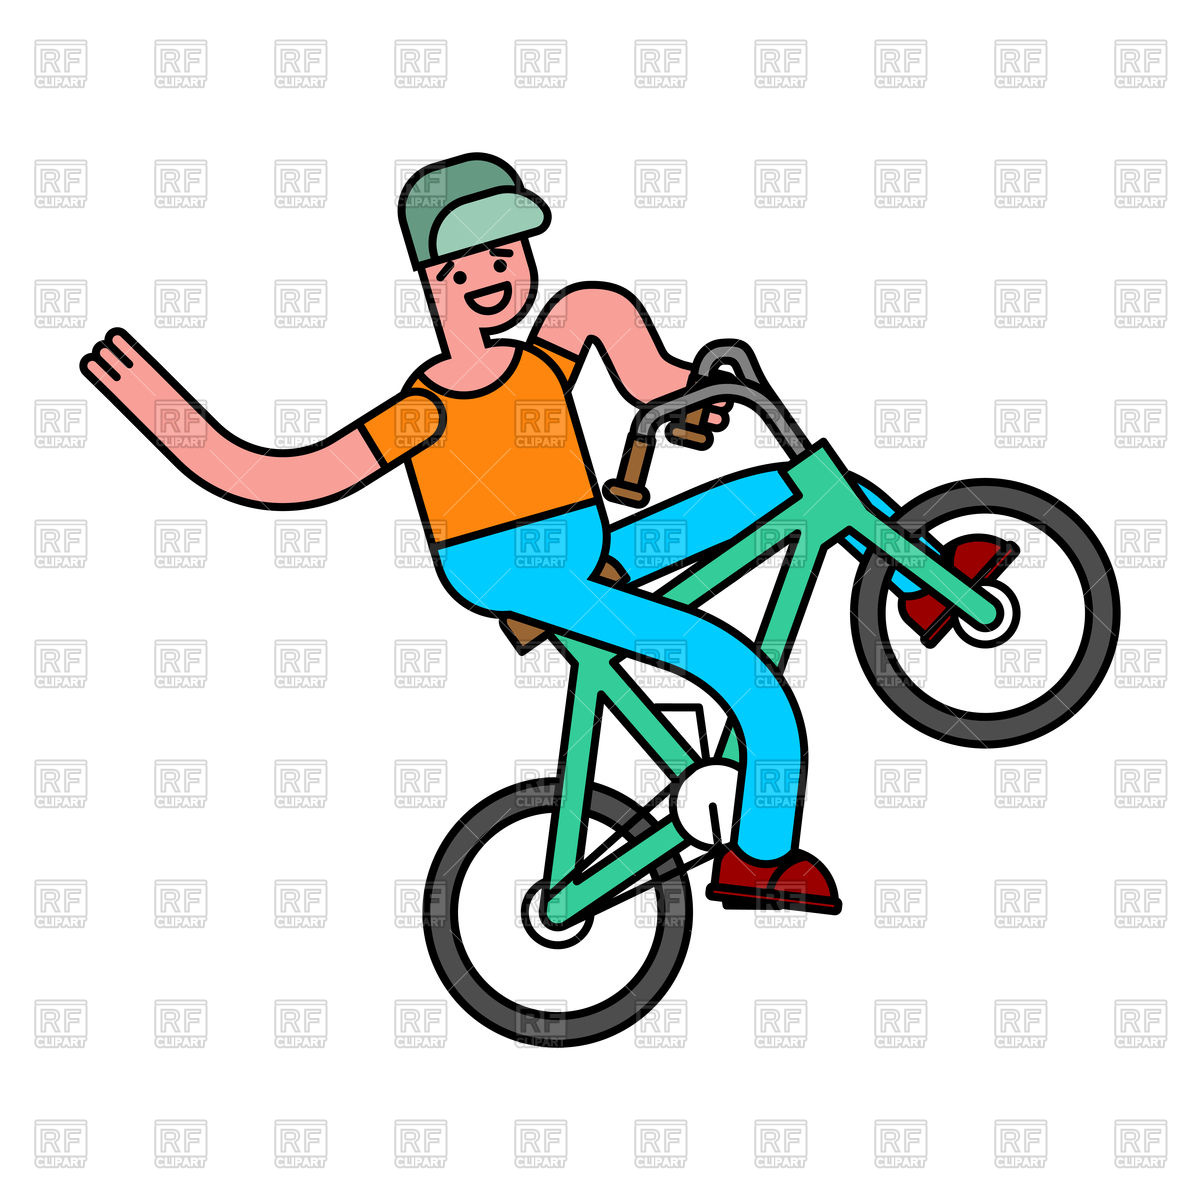 1200x1200 Tricks On Bicycle. Guy On Bike. Repent Of Bmx Royalty Free Vector